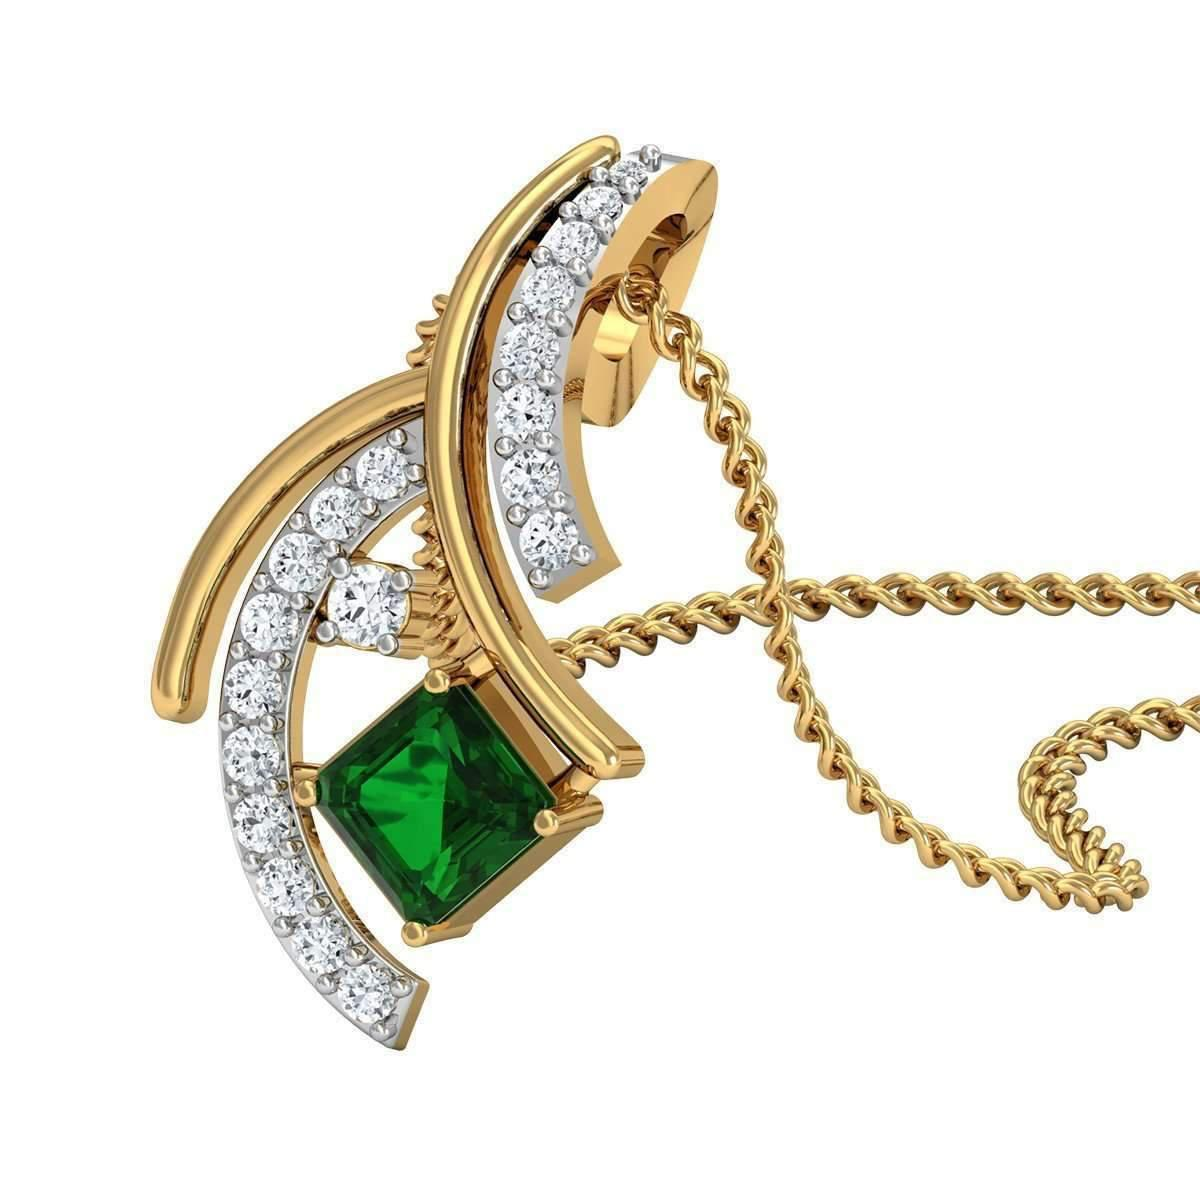 Diamoire Jewels Hand-carved 18kt Yellow Gold Pendant Set With Premium Emeralds and Diamonds 3iPOU